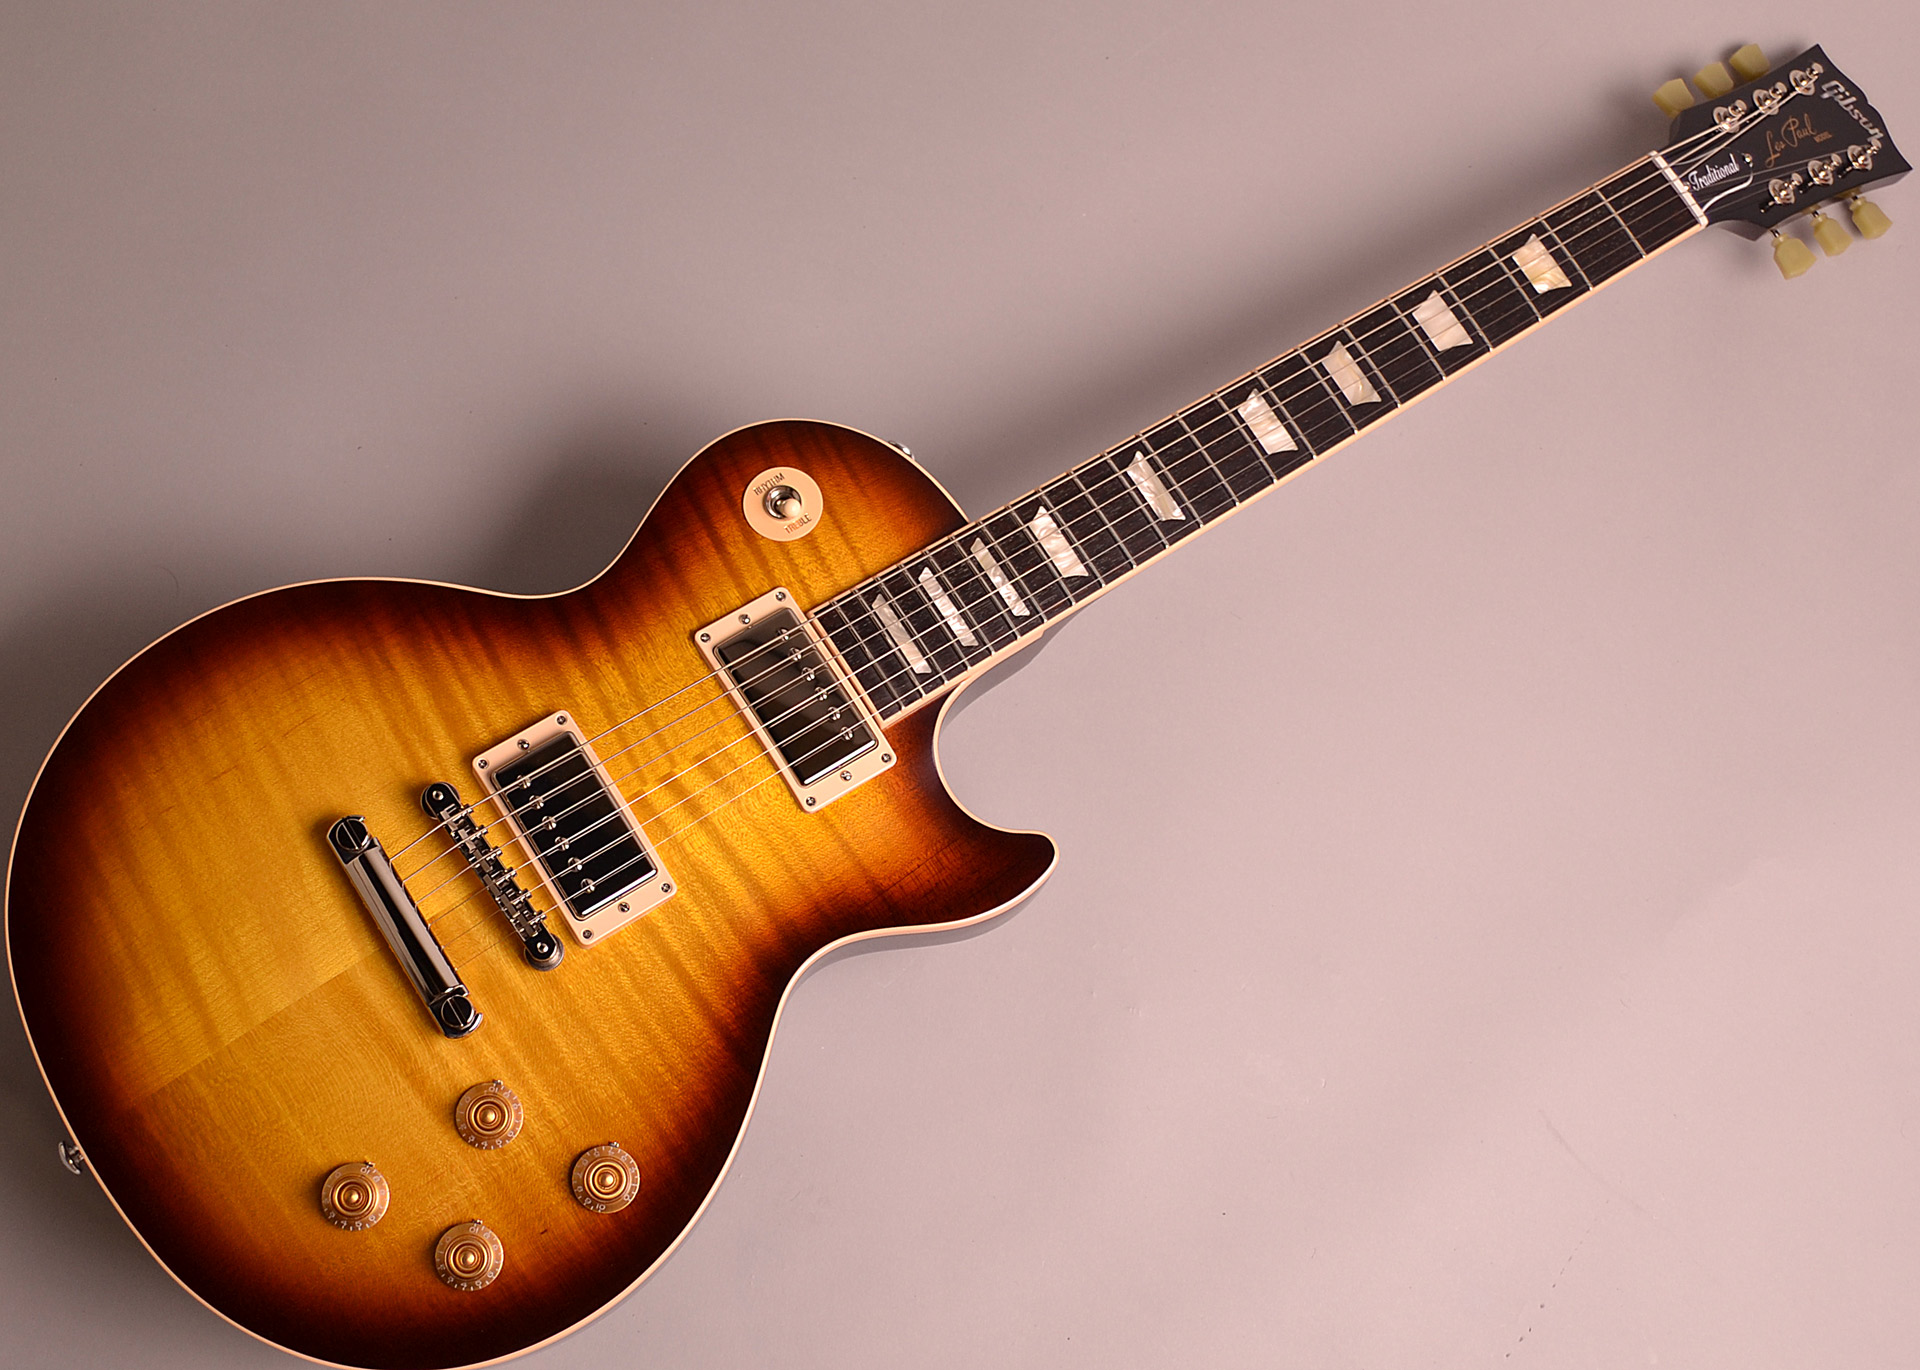 Les Paul Traditional 2018の全体画像